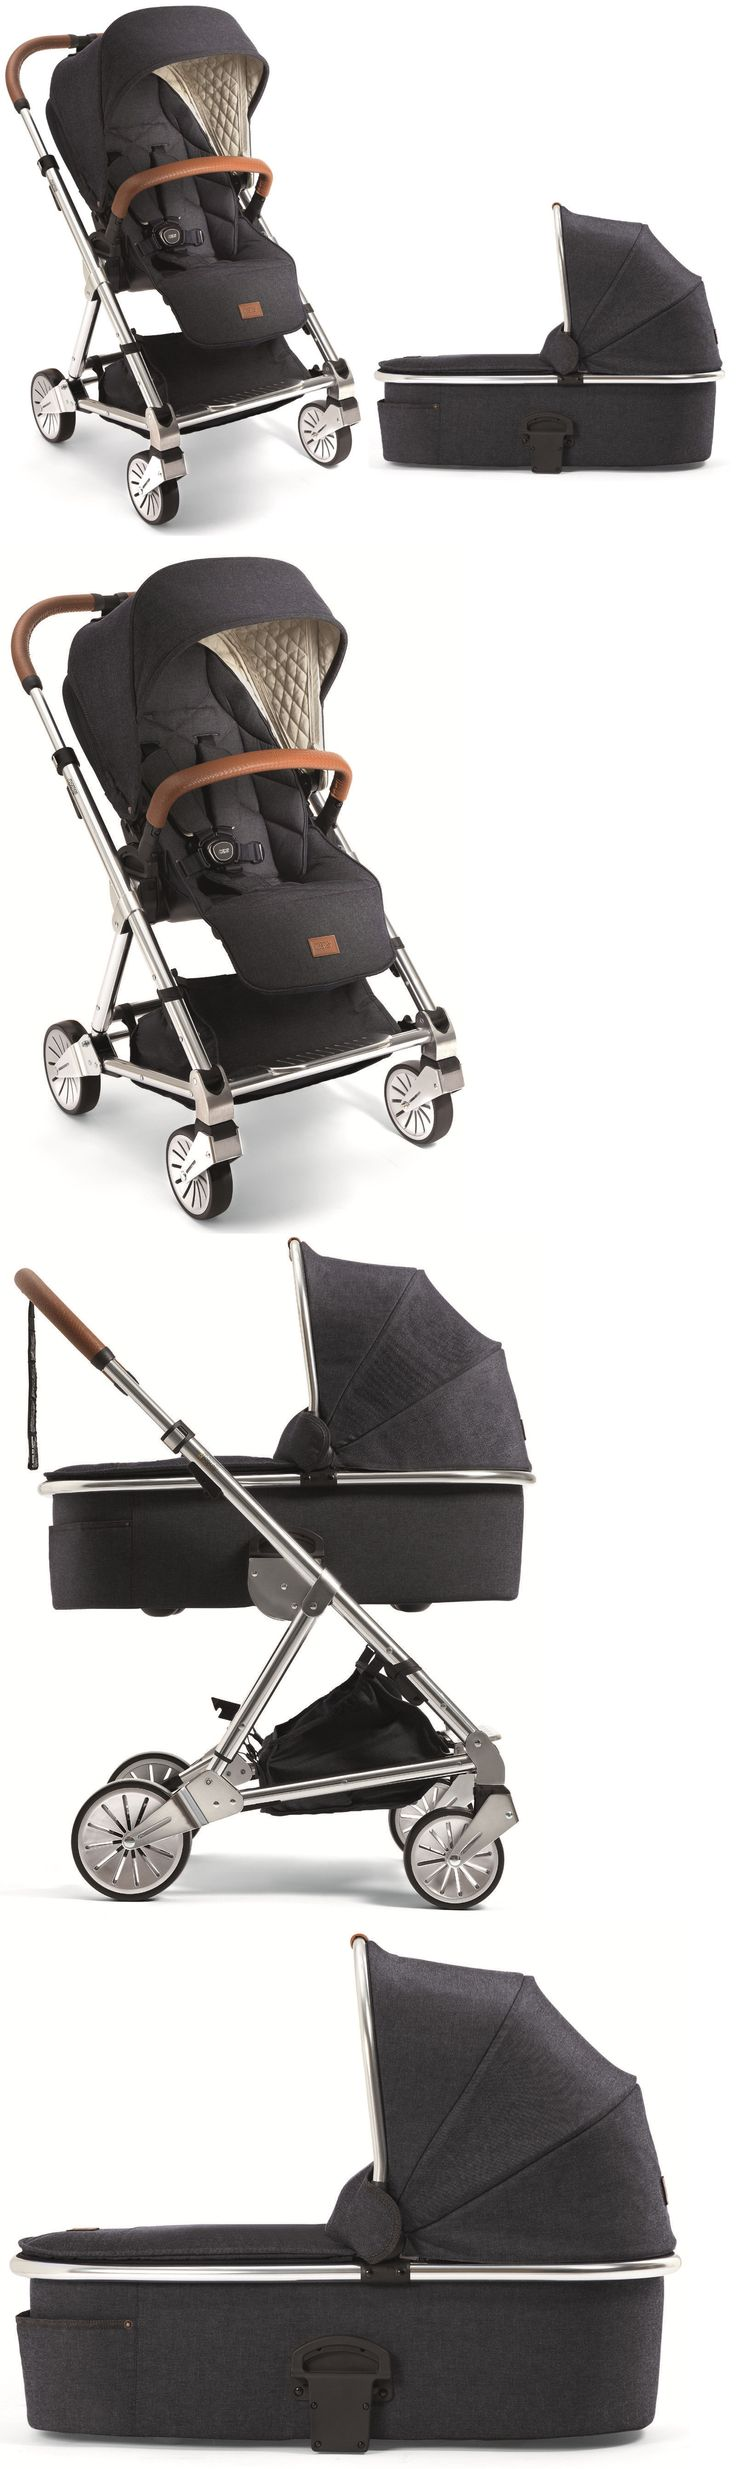 Other Baby Safety and Health 20436: Mamas And Papas Urbo 2 Compact Reversible Seat Baby Stroller W Bassinet Blue Denim -> BUY IT NOW ONLY: $759.99 on eBay!